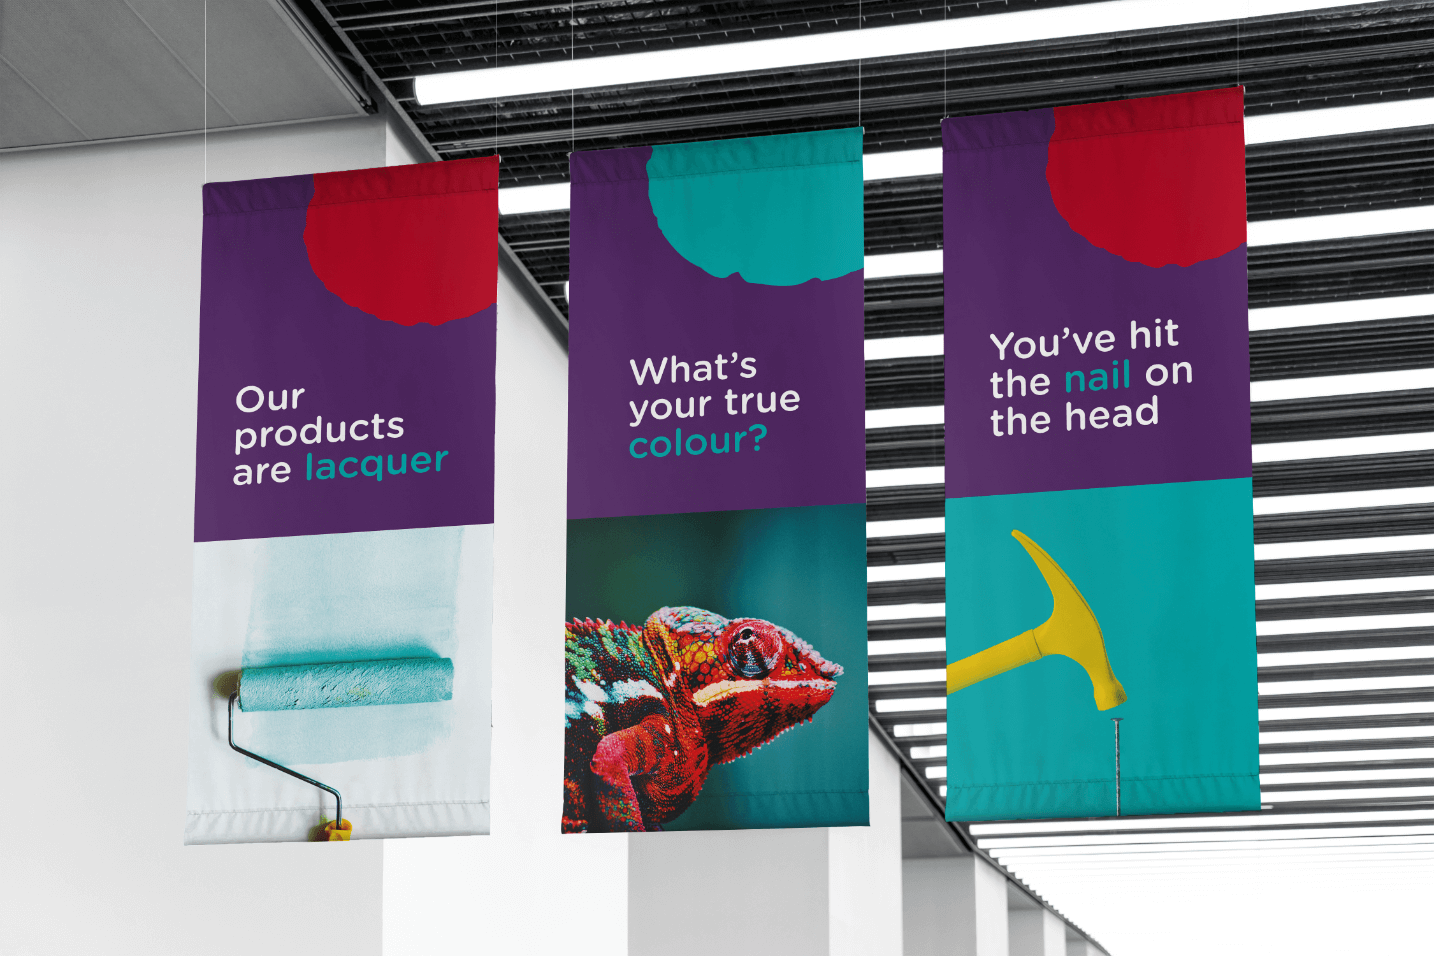 Creative Caterpillar client Dü Paint and Tool ceiling banners.